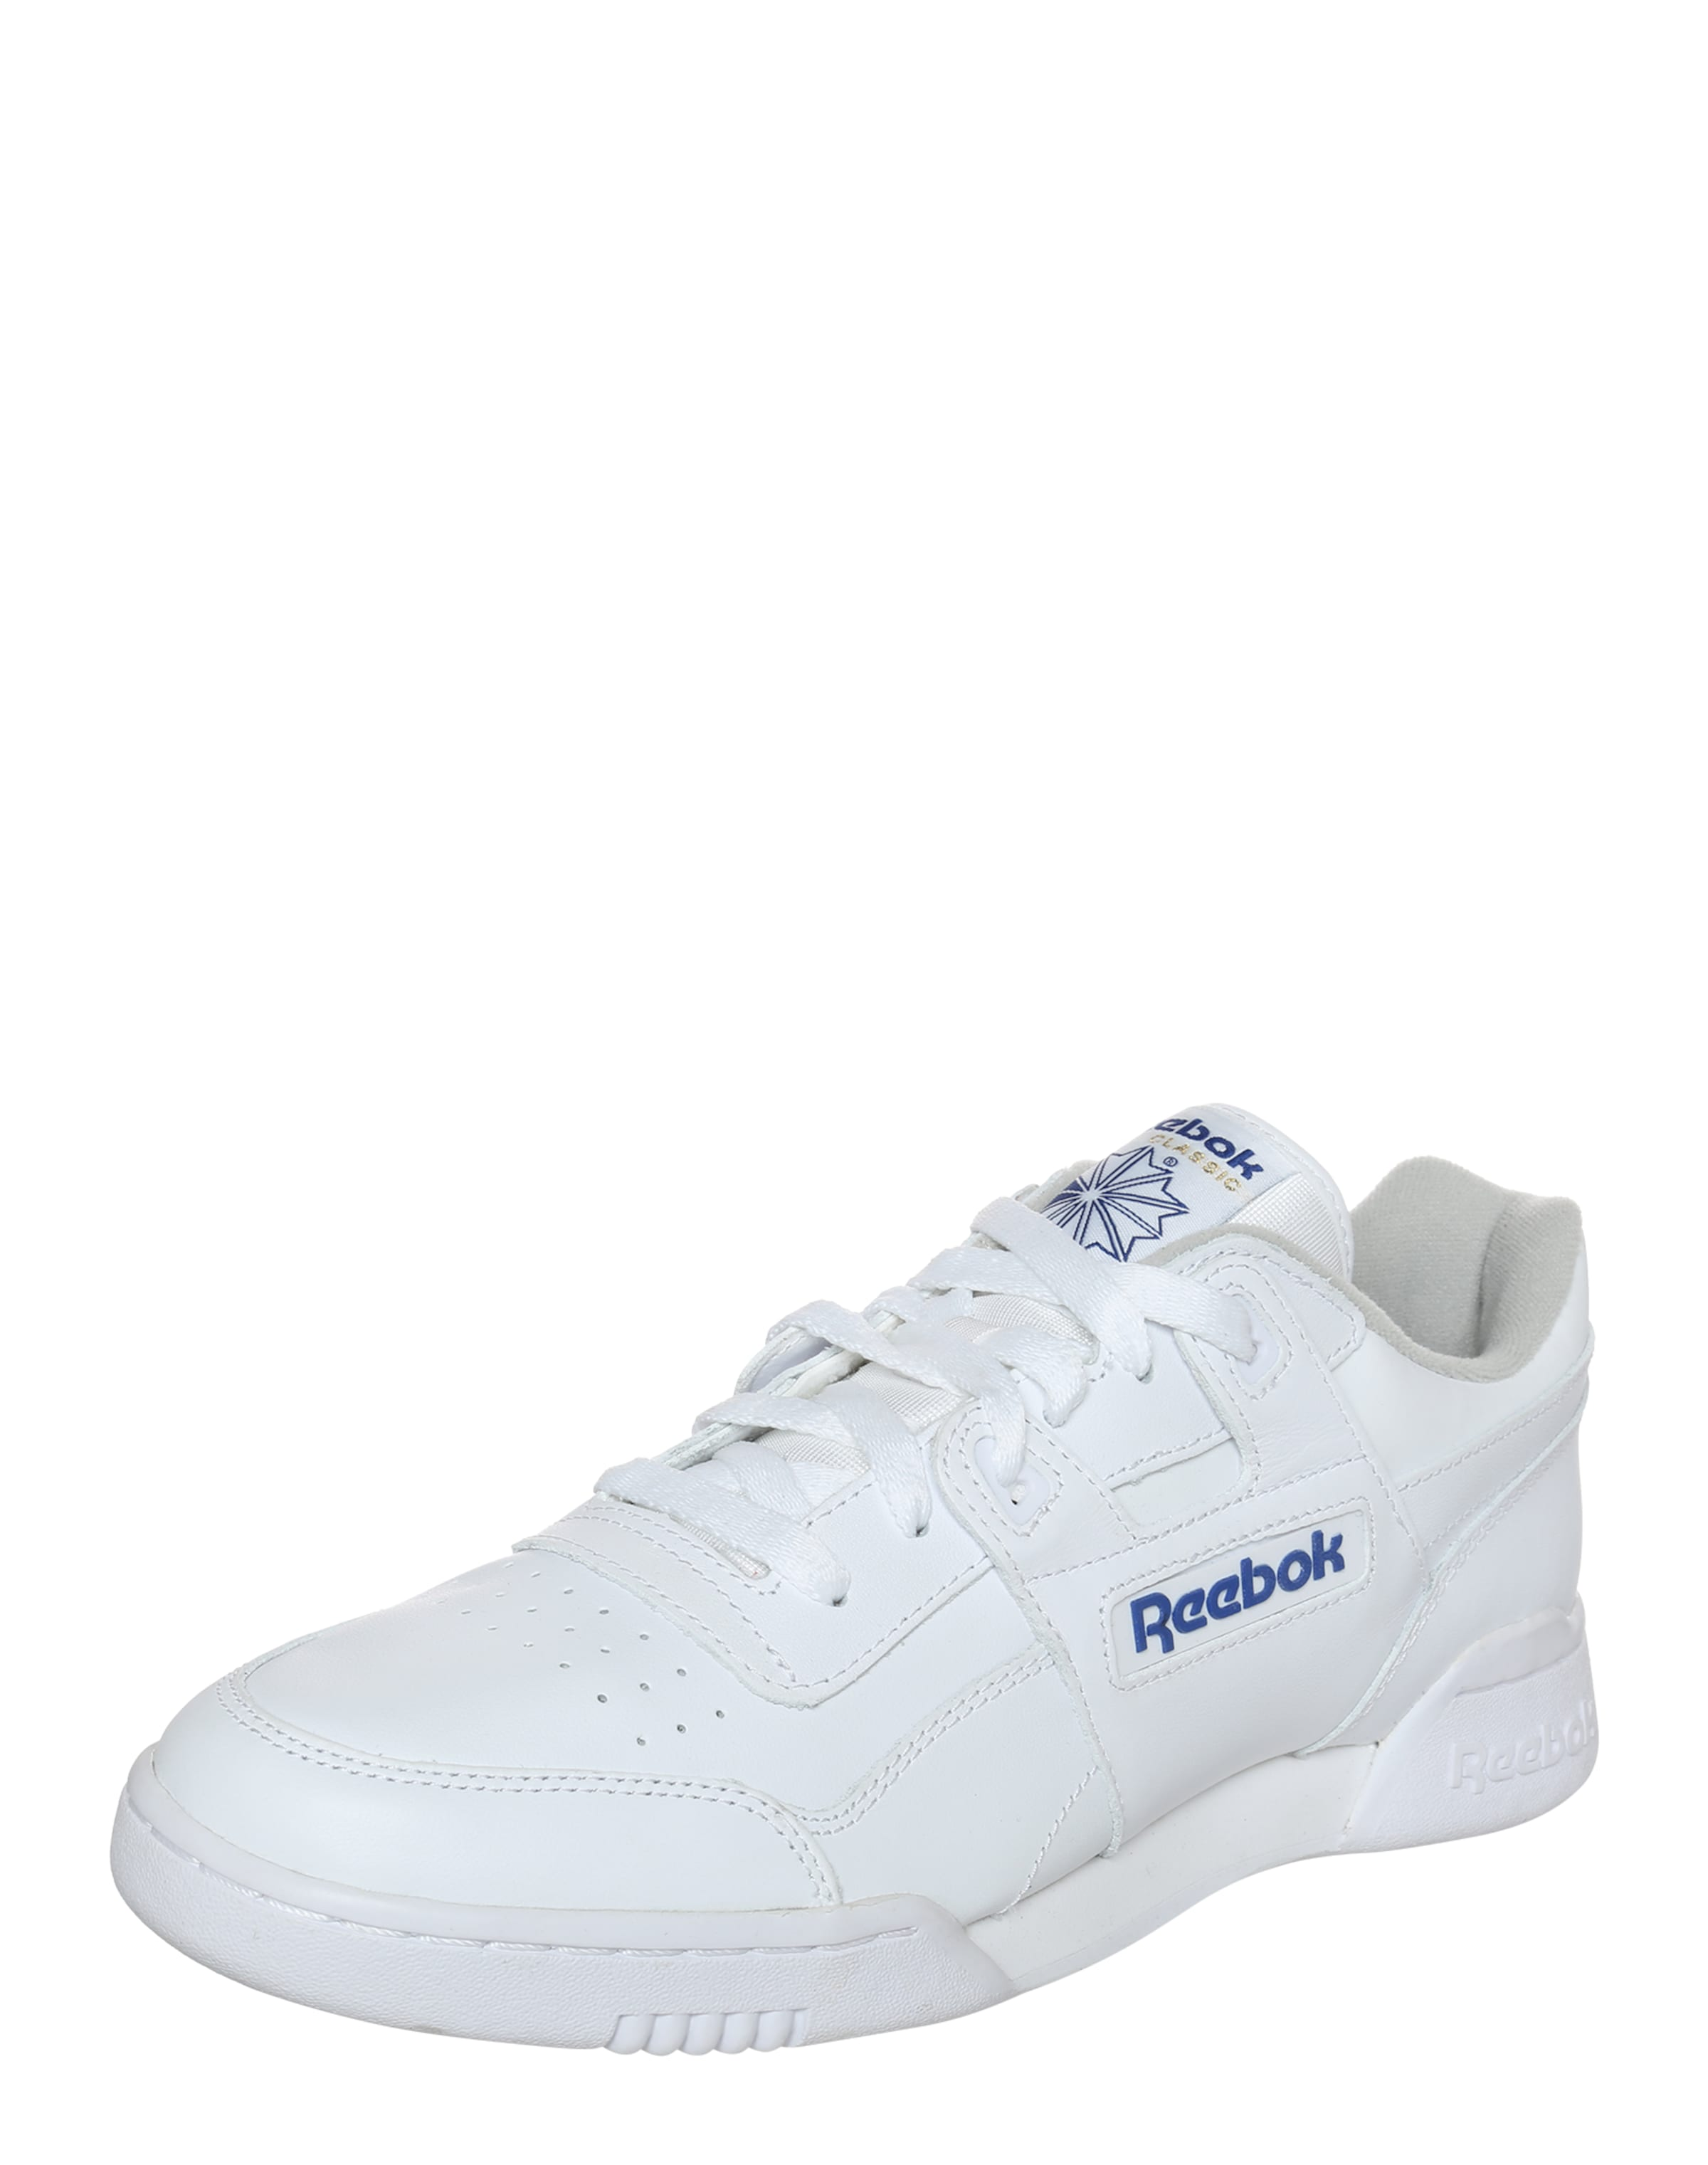 Reebok Classic Turnschuhe 'Workout Plus' in weiß